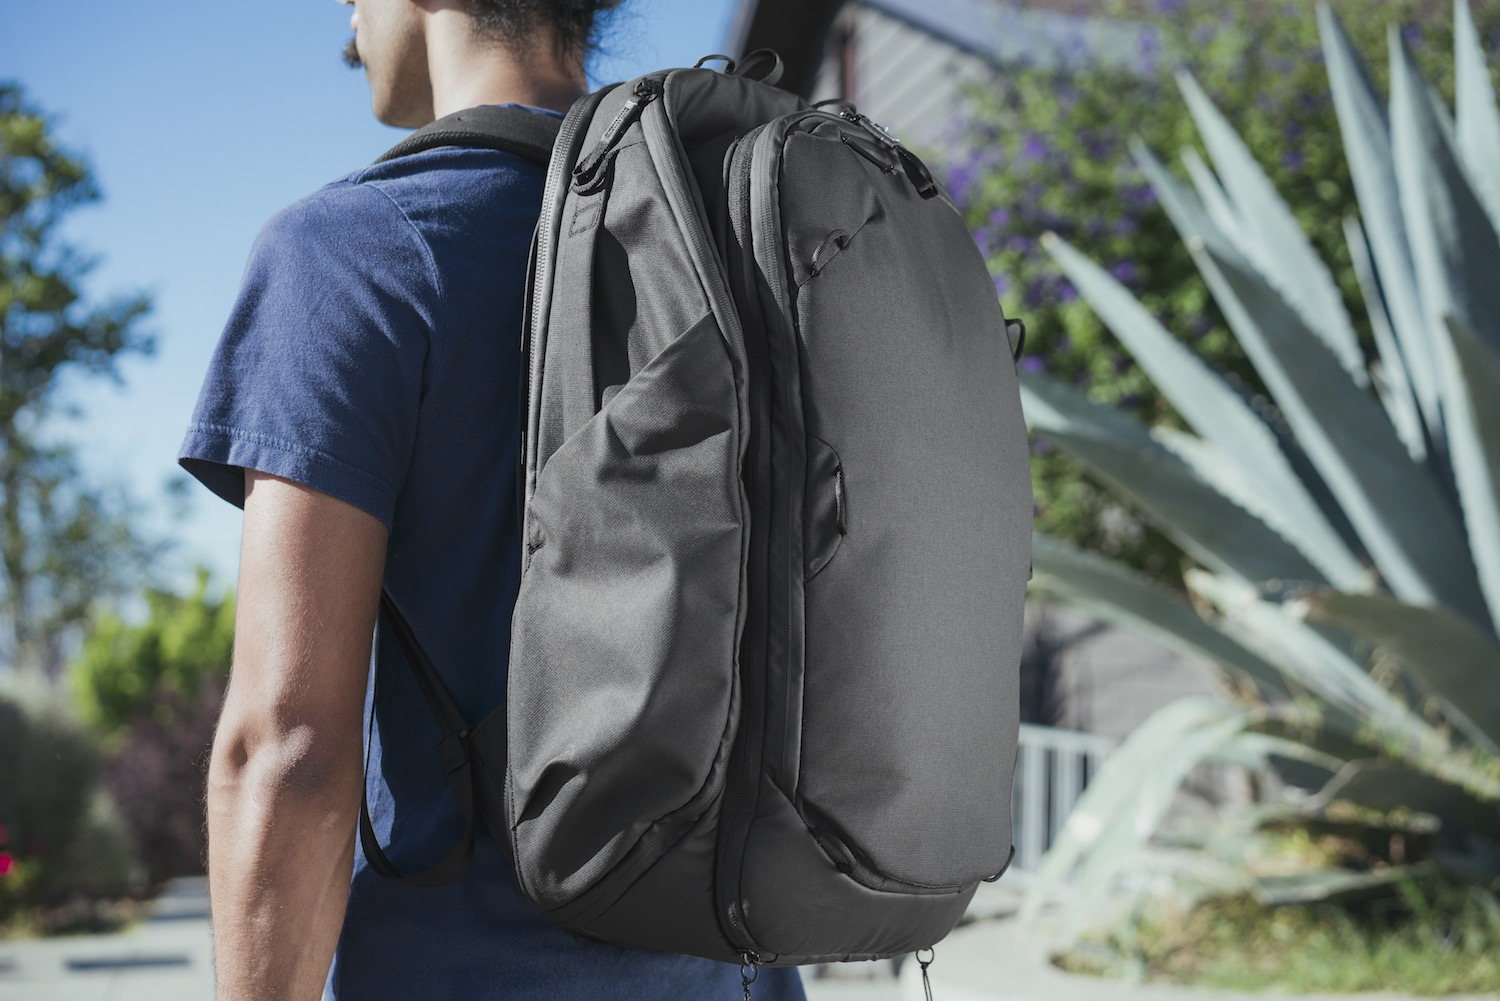 Image: Snaps at the top allow the bag to shrink in size, but it's still pretty large and cumbe...